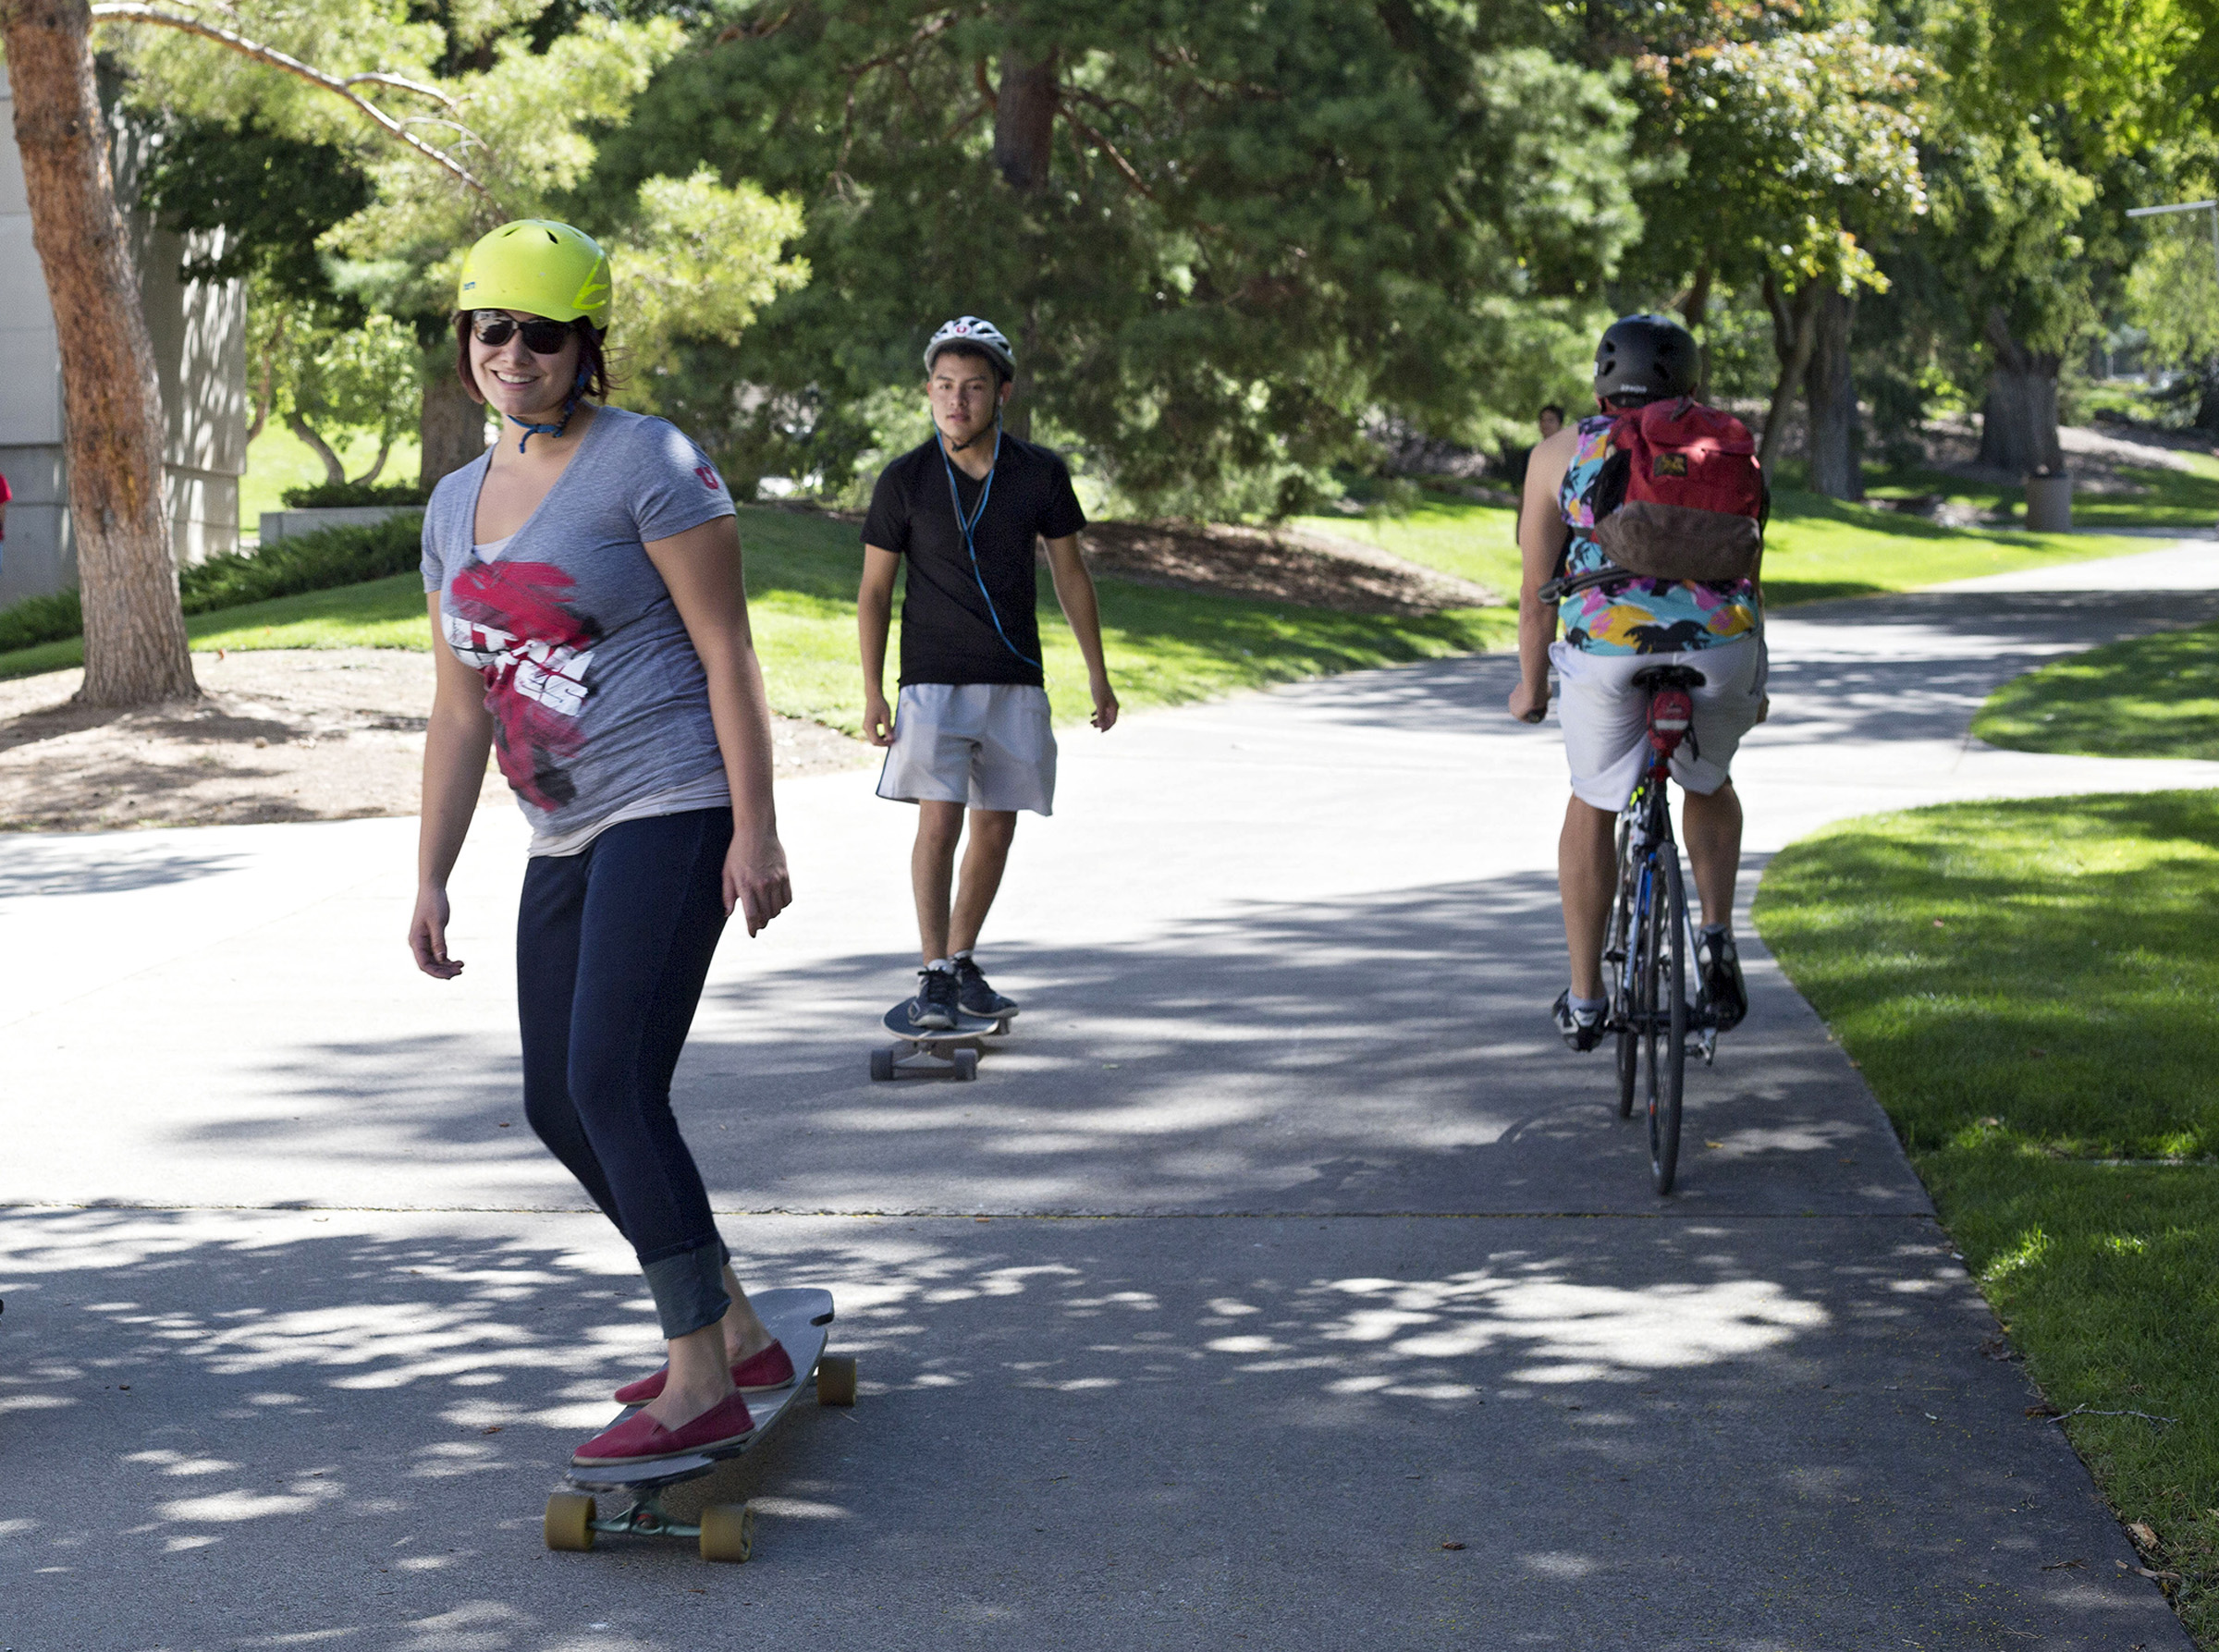 Safety personnel educated or warned more than 500 cyclists and skateboarders on campus last month alone. This was part of the university's SAFE (Sidewalks are for Everyone) campaign, which was instituted after the U's sidewalk policy was updated in August to enhance safety for pedestrians across campus.